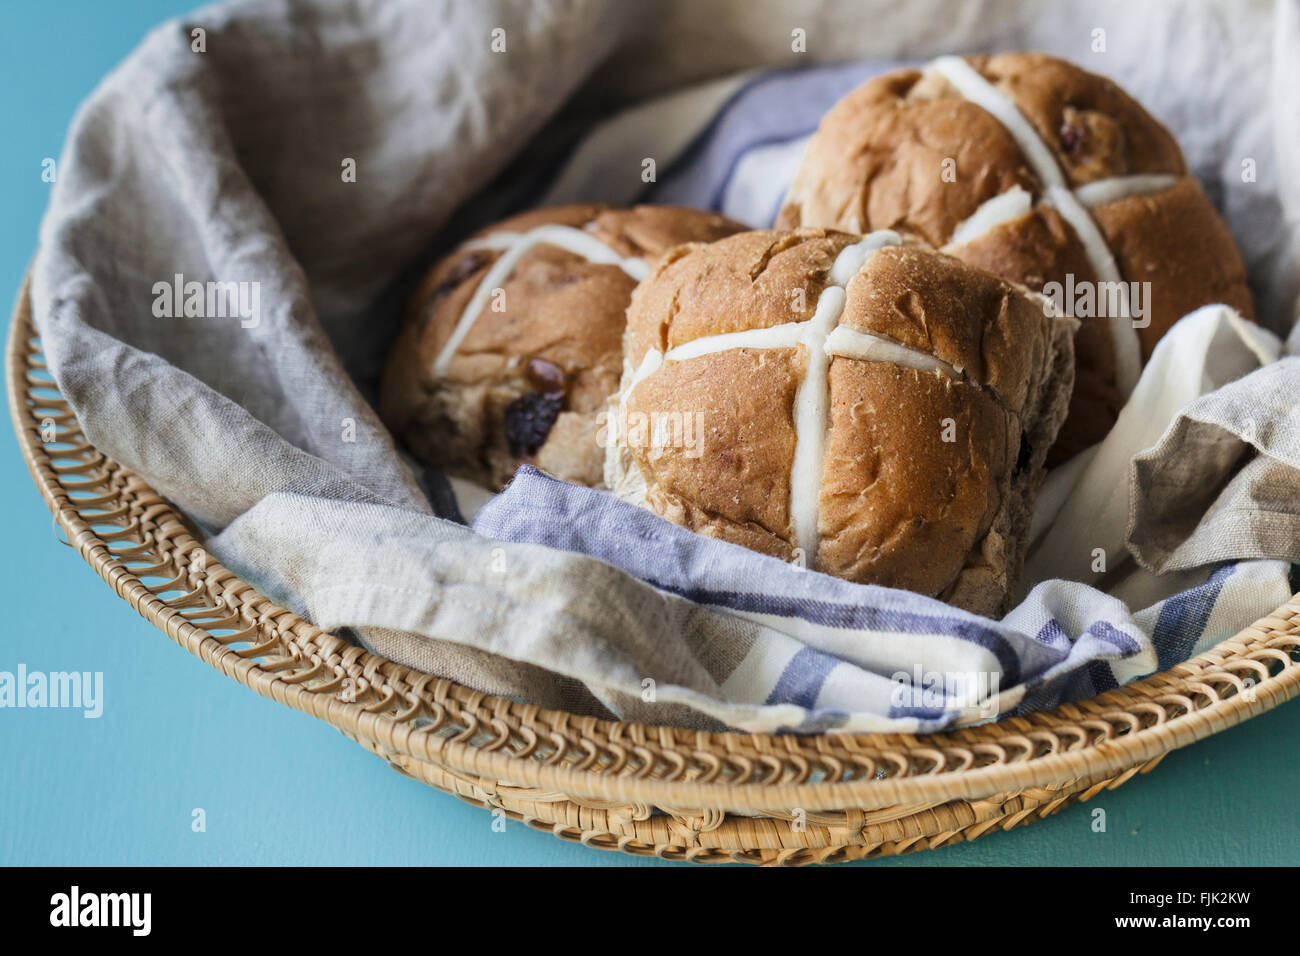 Three Easter hot cross buns in a basket with blue and grey linen cloth - Stock Image